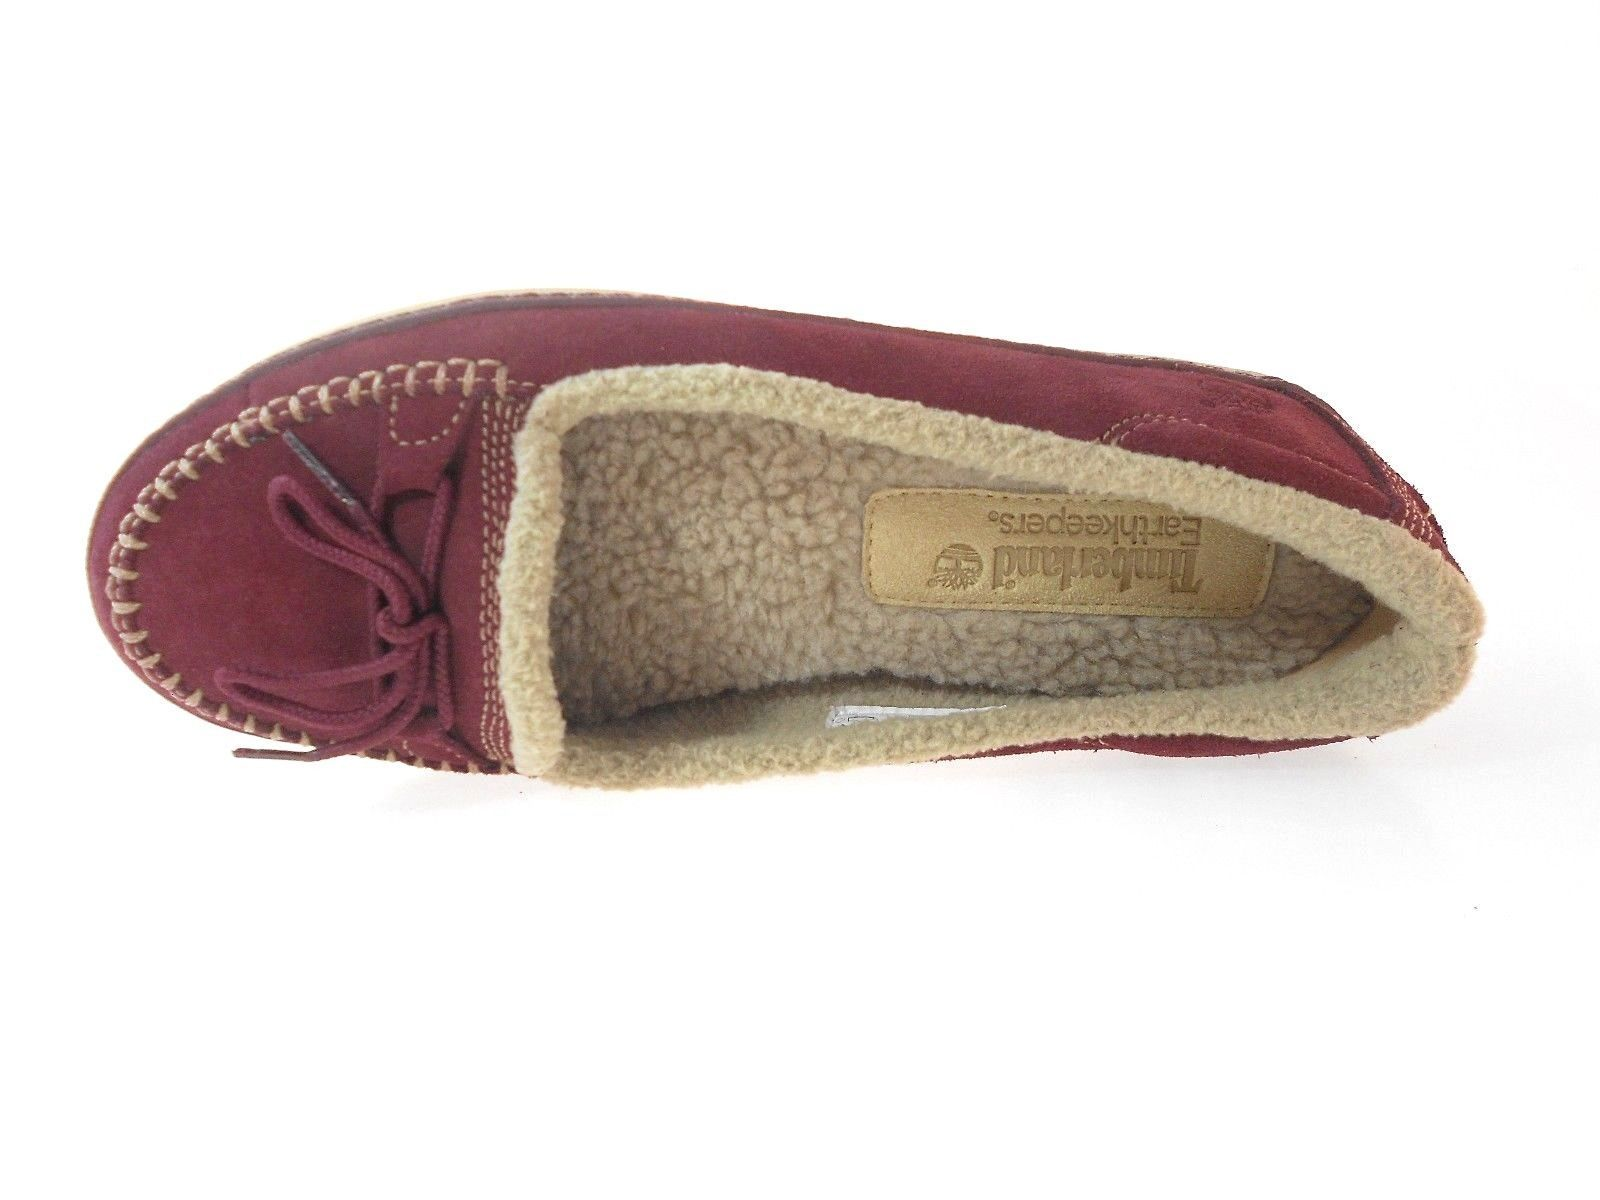 TIMBERLAND 8455A WOMEN'S BURGUNDY SUEDE SLIP-ON CASUAL SHOES sz 7.5, 8